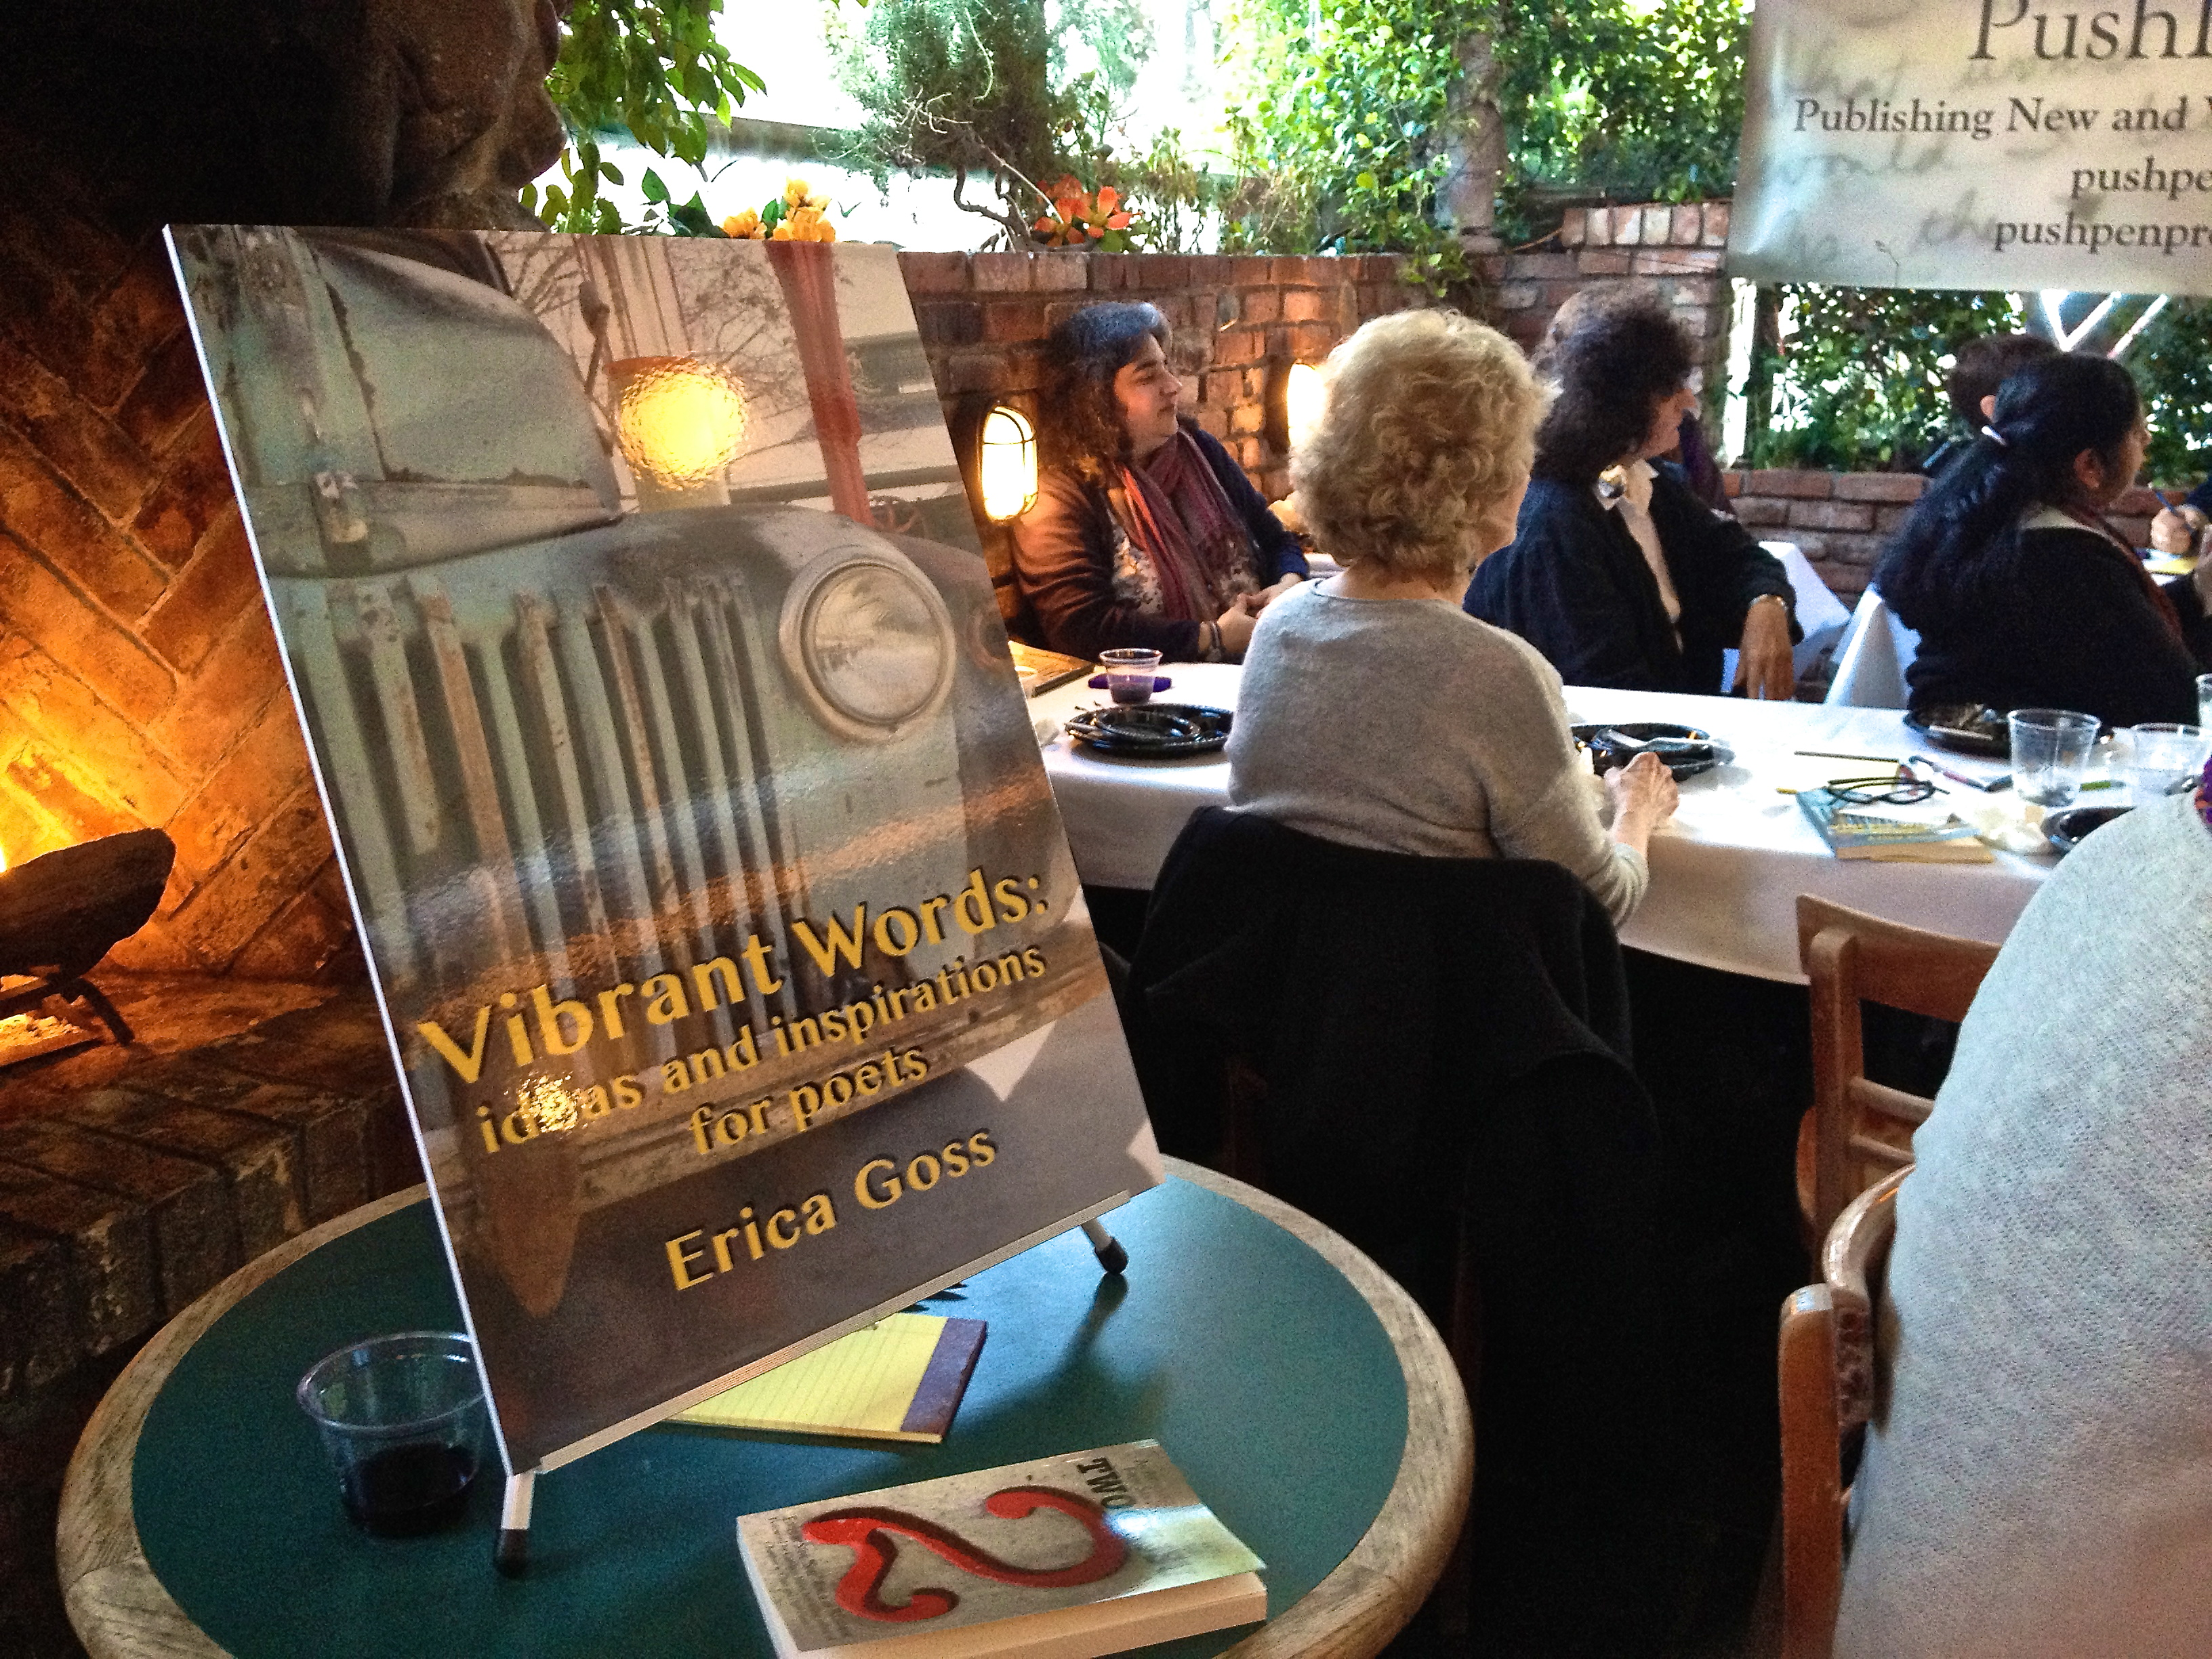 """Vibrant Words: ideas and inspirations for poets"", by Erica Goss (Poet Laureate of Los Gatos, California) Book Launch Party!"